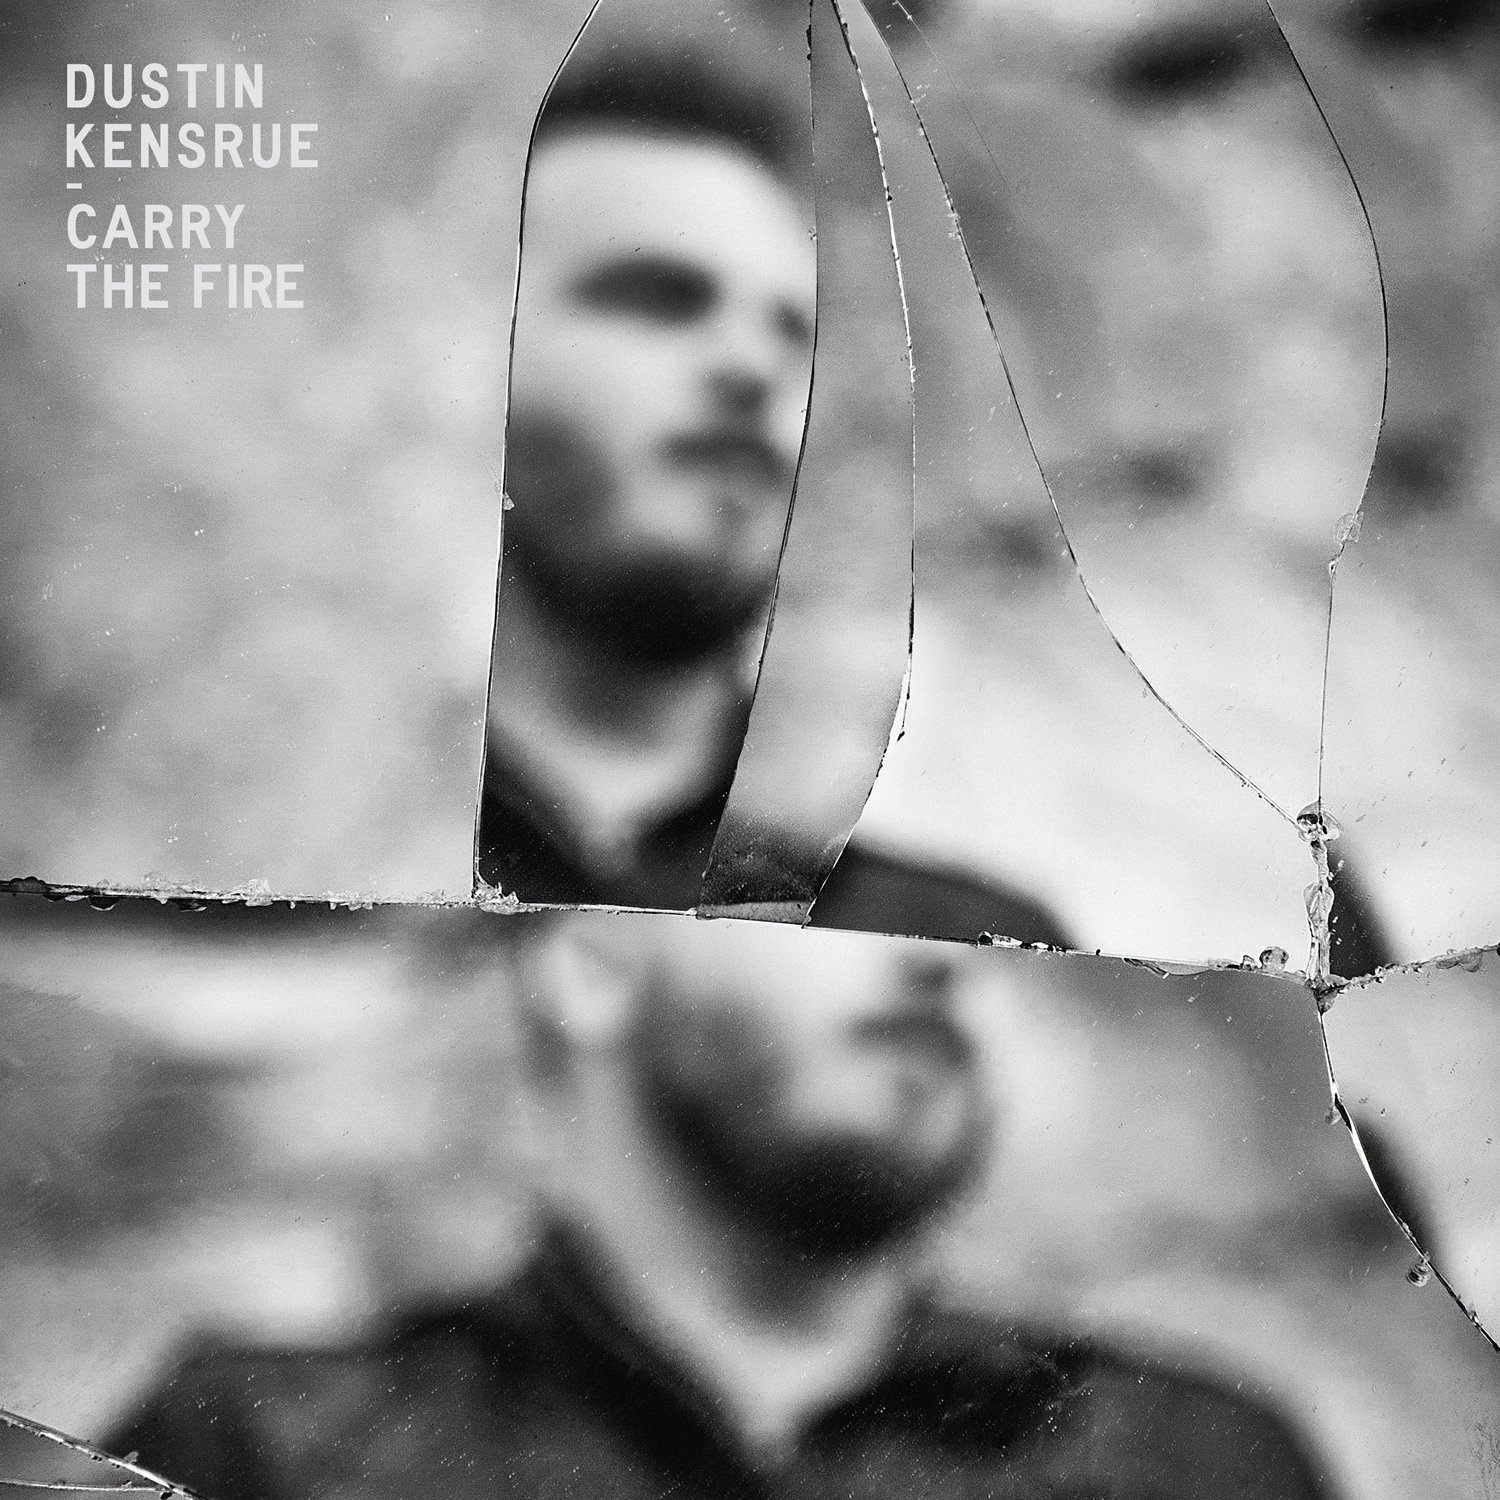 Dustin Kensure Carry the Fire